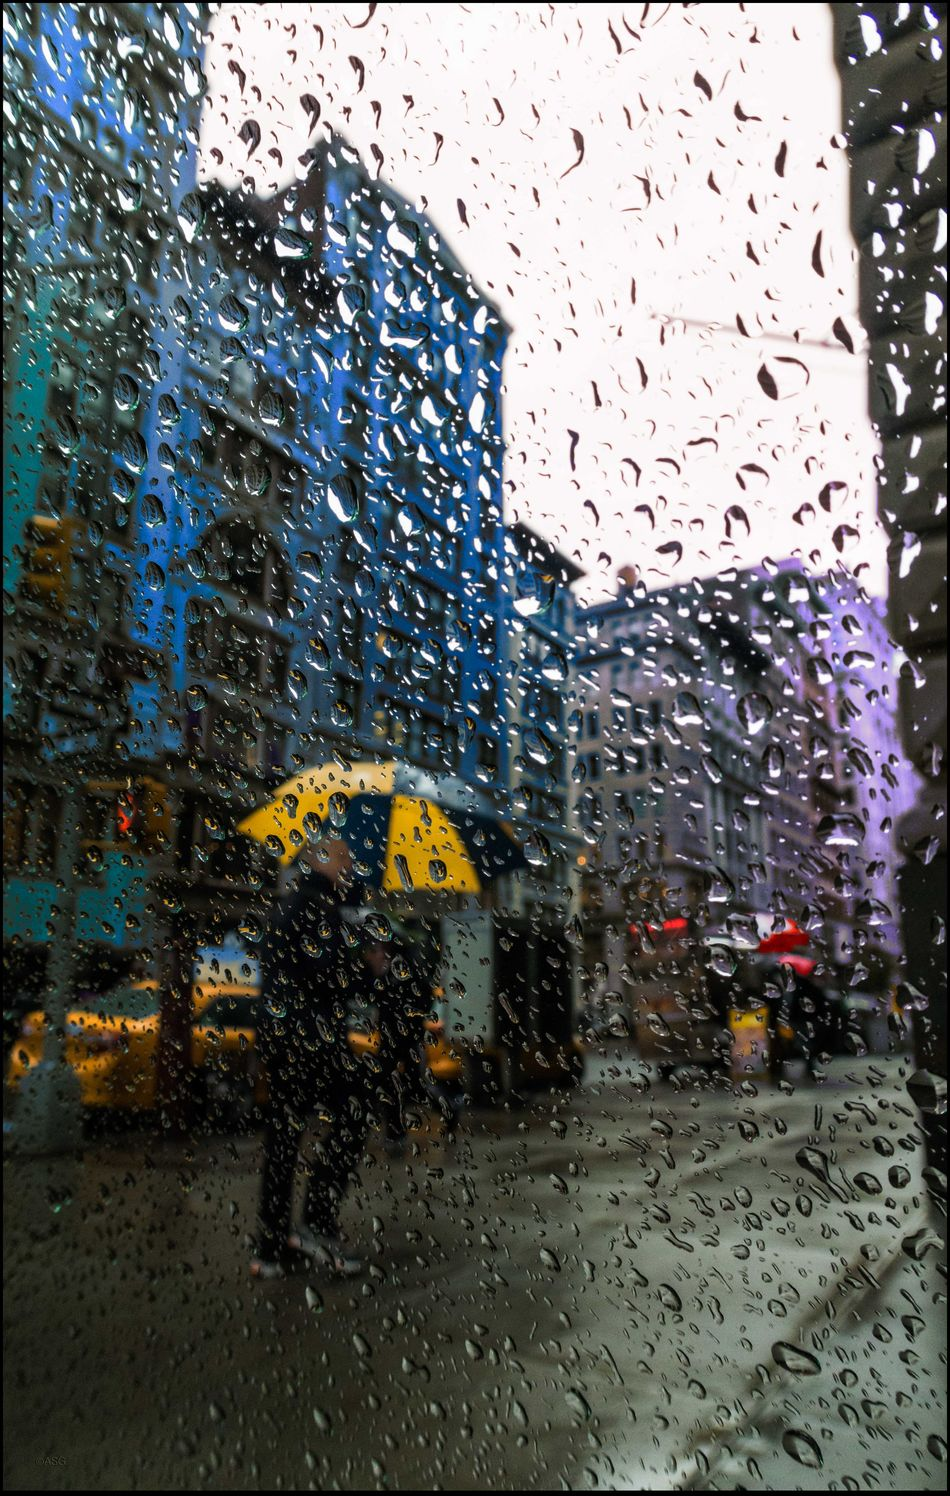 Water Drops #86 - 5/6/16 As I Sees It Brudder We've Had Our Share Of Rain Creative Selections & Adjustments W/ Ps CC2016 EyeEm Best Edits EyeEm StreetPhotography, NYC Rain Brings Growth & Opportunity For 📸 The Photojournalist – 2016 EyeEm Awards The Street Photographer - 2016 EyeEm Awards Fresh on Market May 2016